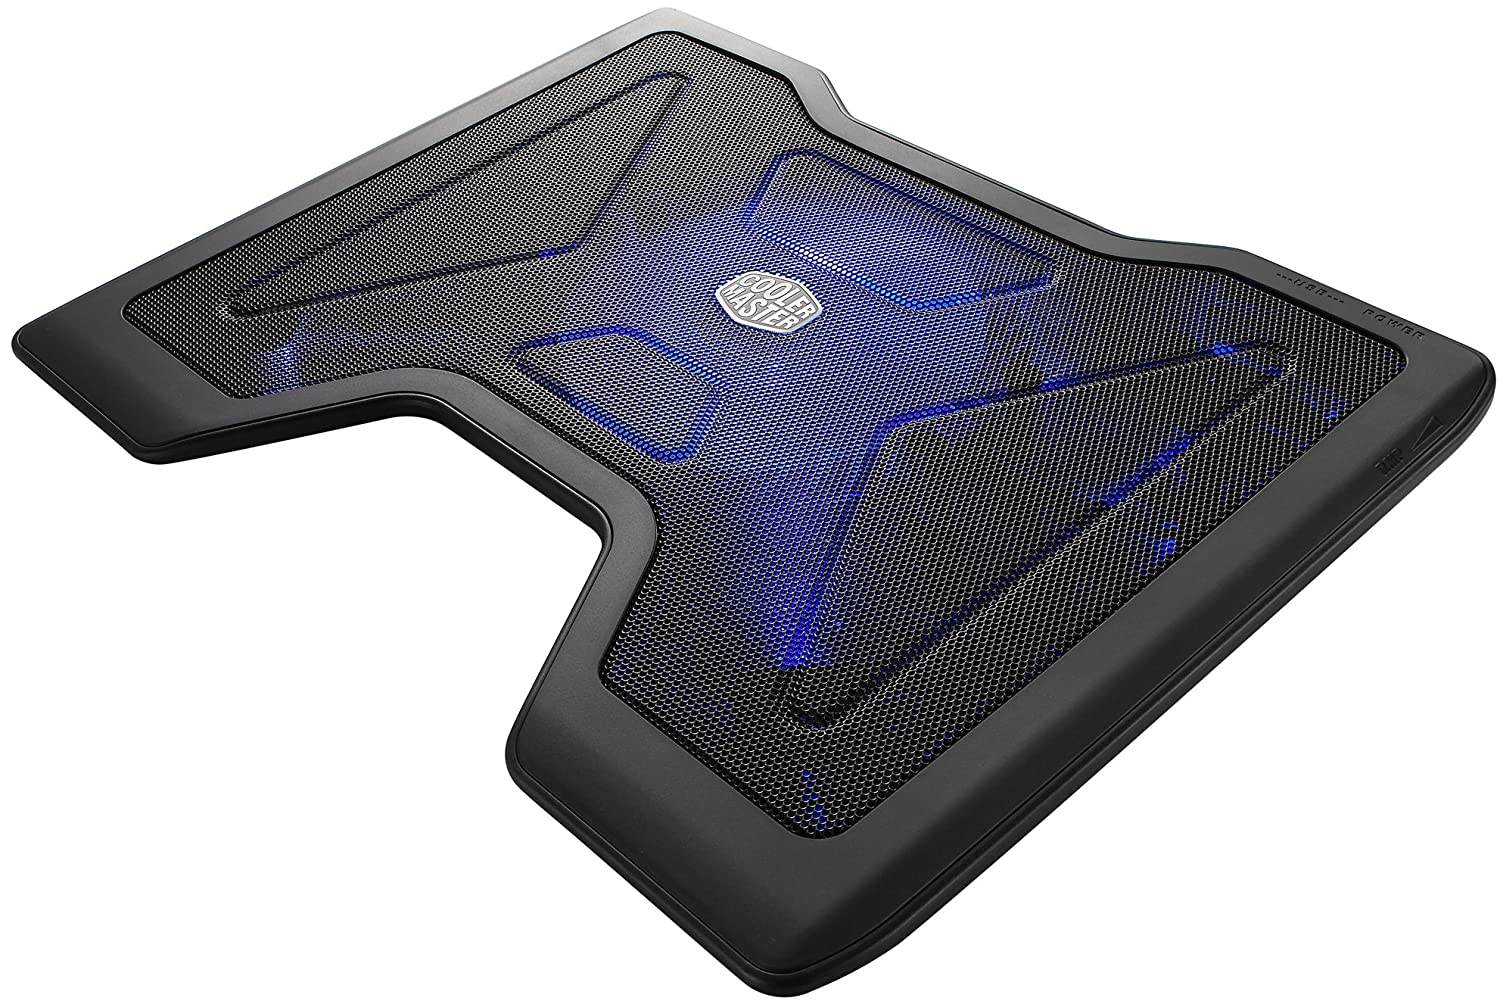 Details about Laptop Cooling Pad Cooler Blue LED Fan Chill Mat Gaming  #41436F